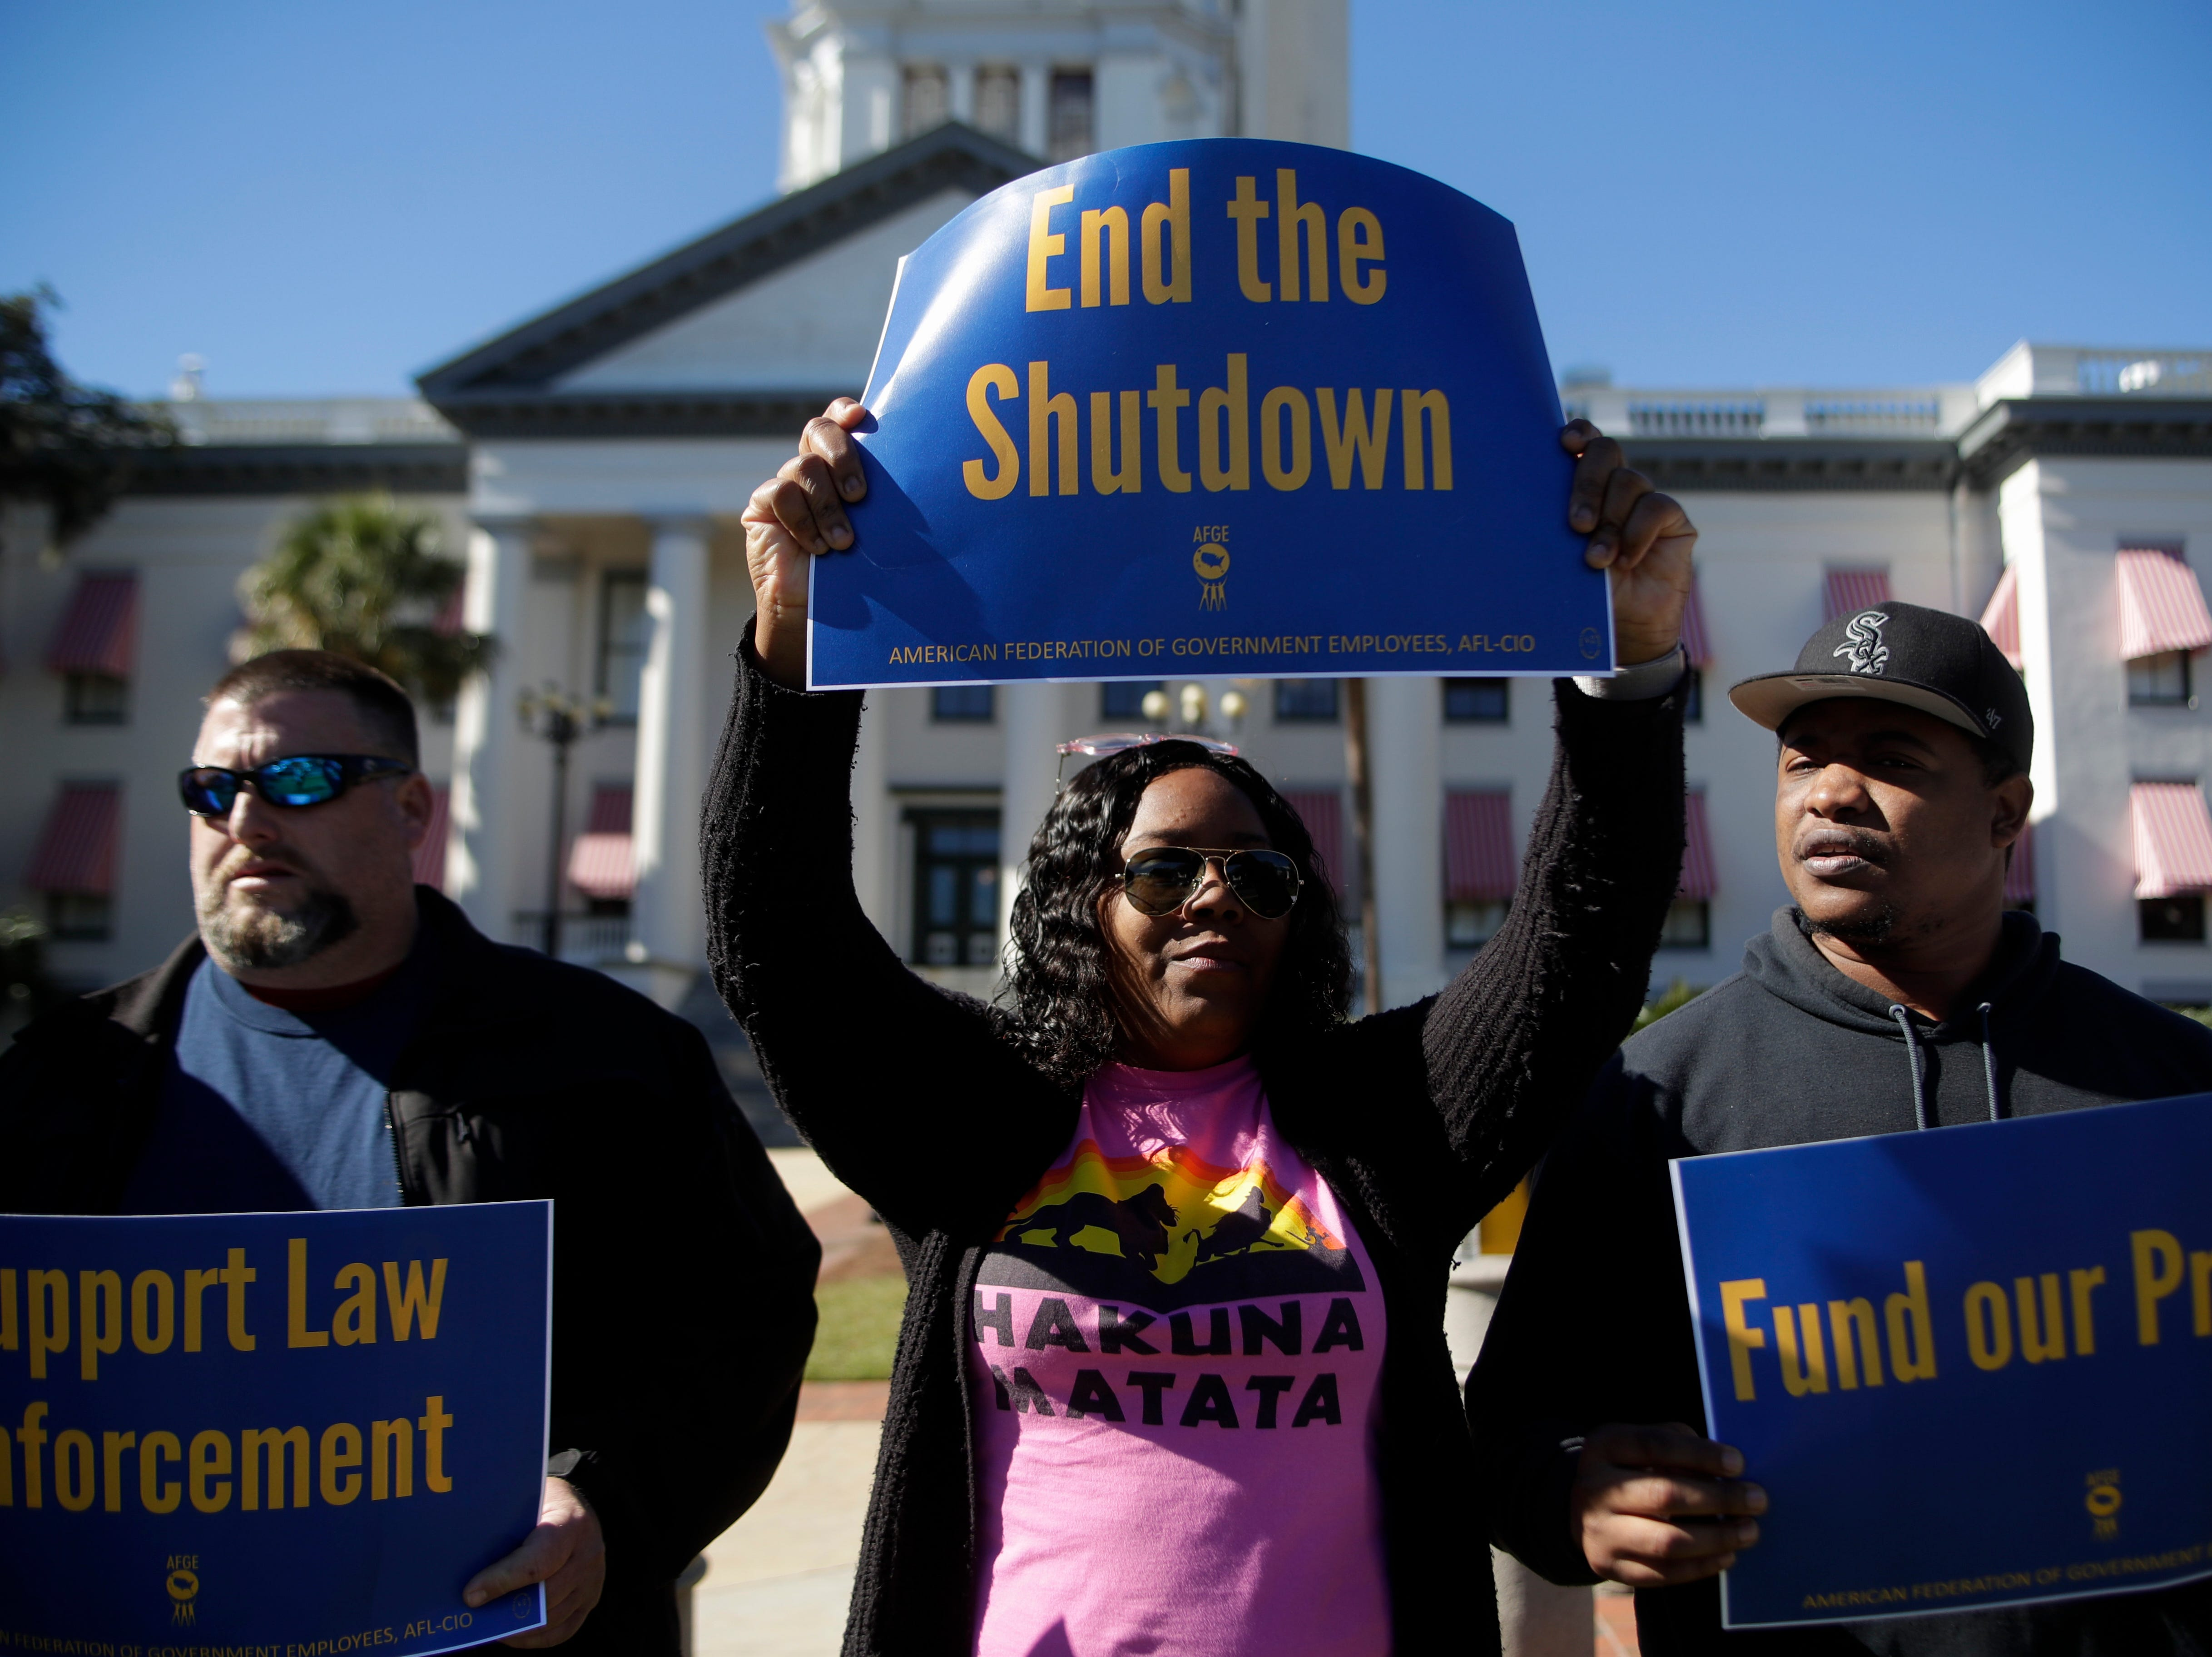 Casey Musgrove, left, Chandra Ward and Xavier Ward rally in front of the Florida Historic Capitol along with several dozen other federal employees in protest of the government shutdown that has left them without pay Thursday, Jan. 10, 2019.